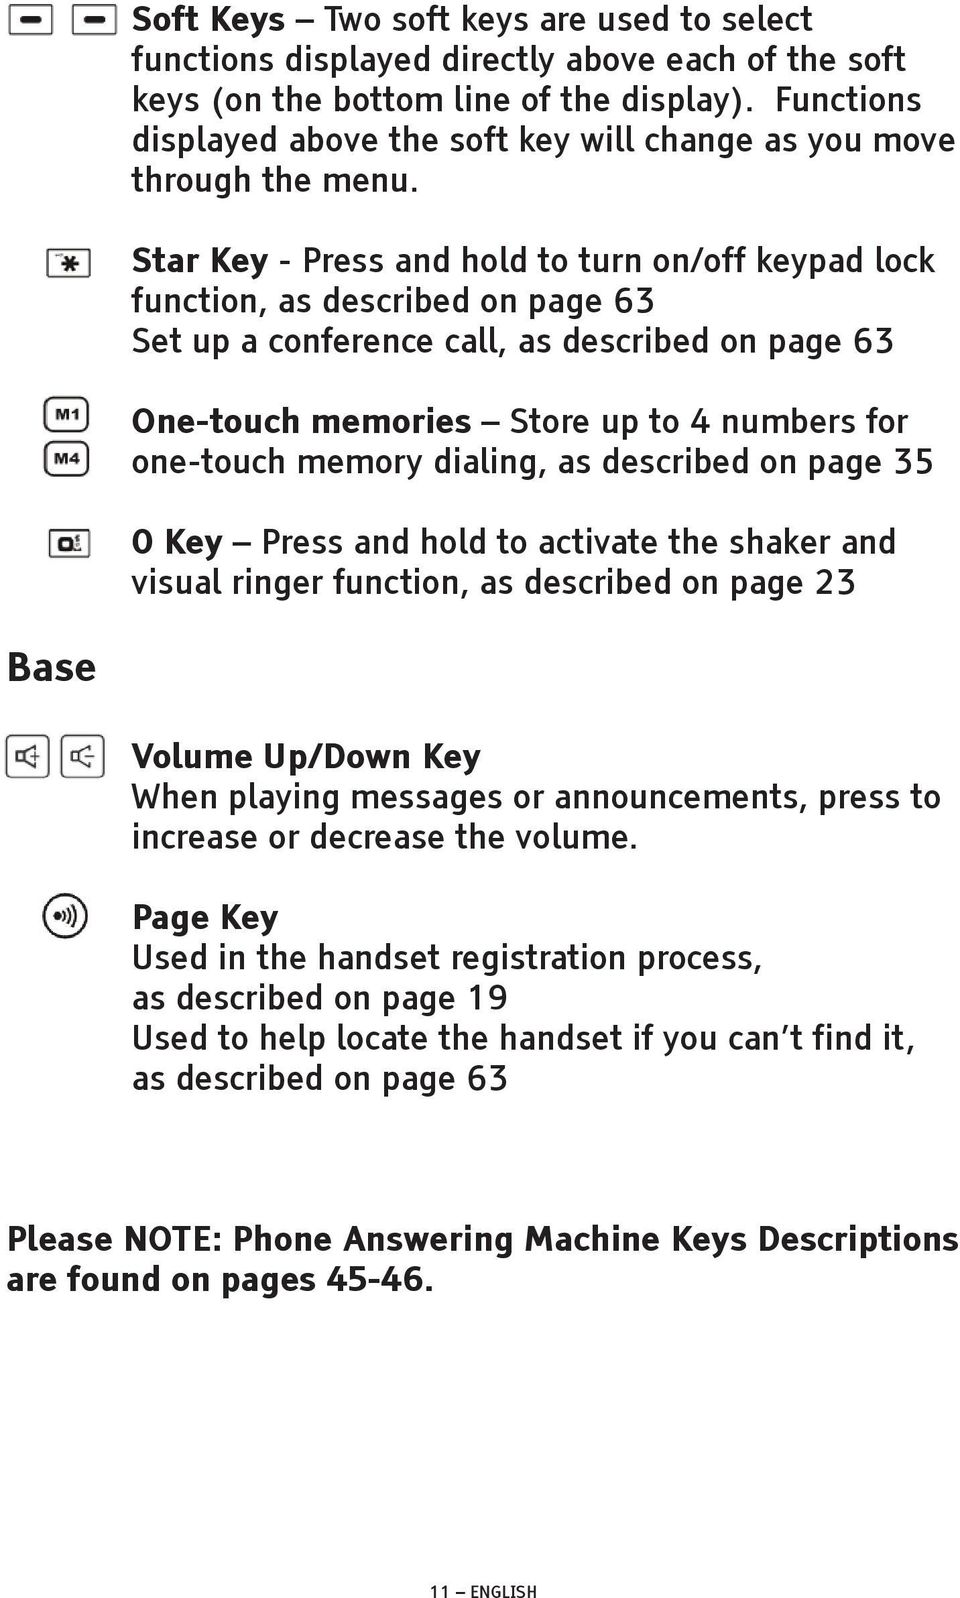 Star Key - Press and hold to turn on/off keypad lock function, as described on page 63 Set up a conference call, as described on page 63 One-touch memories Store up to 4 numbers for one-touch memory